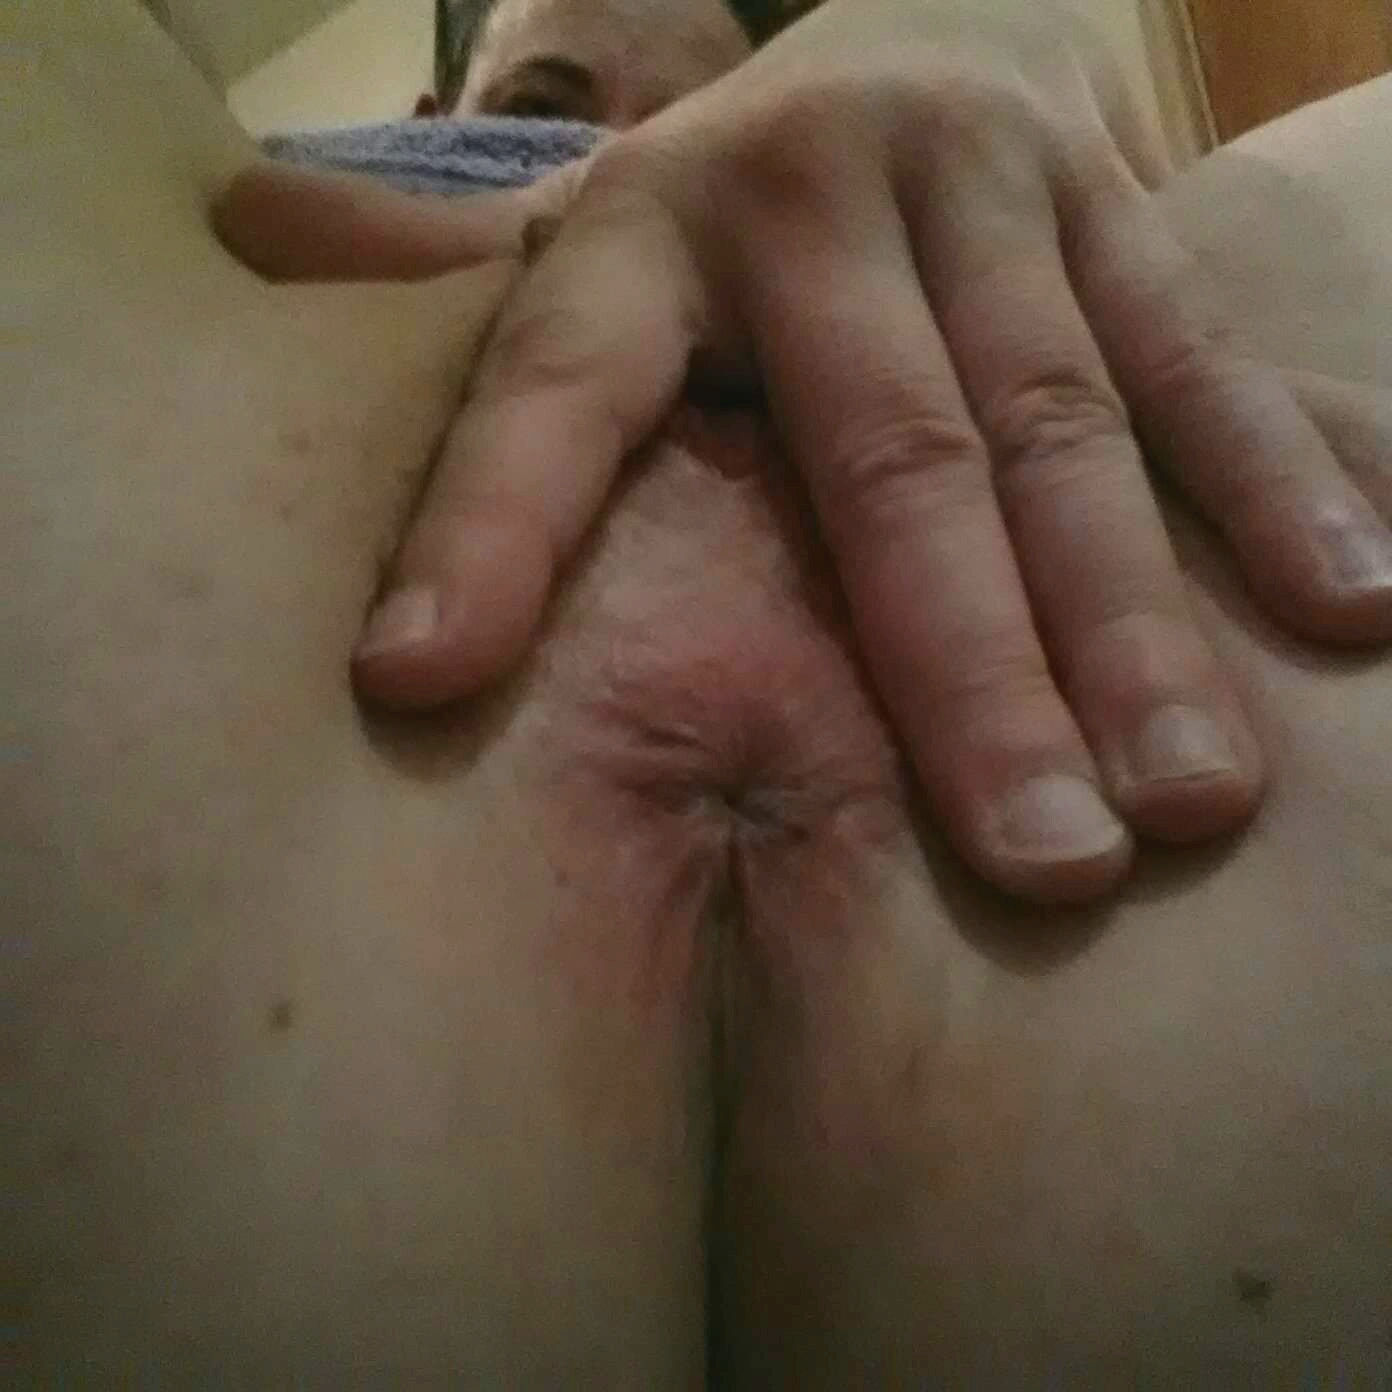 Linda absolutely loves her asshole and pussy photographed. The closer the better